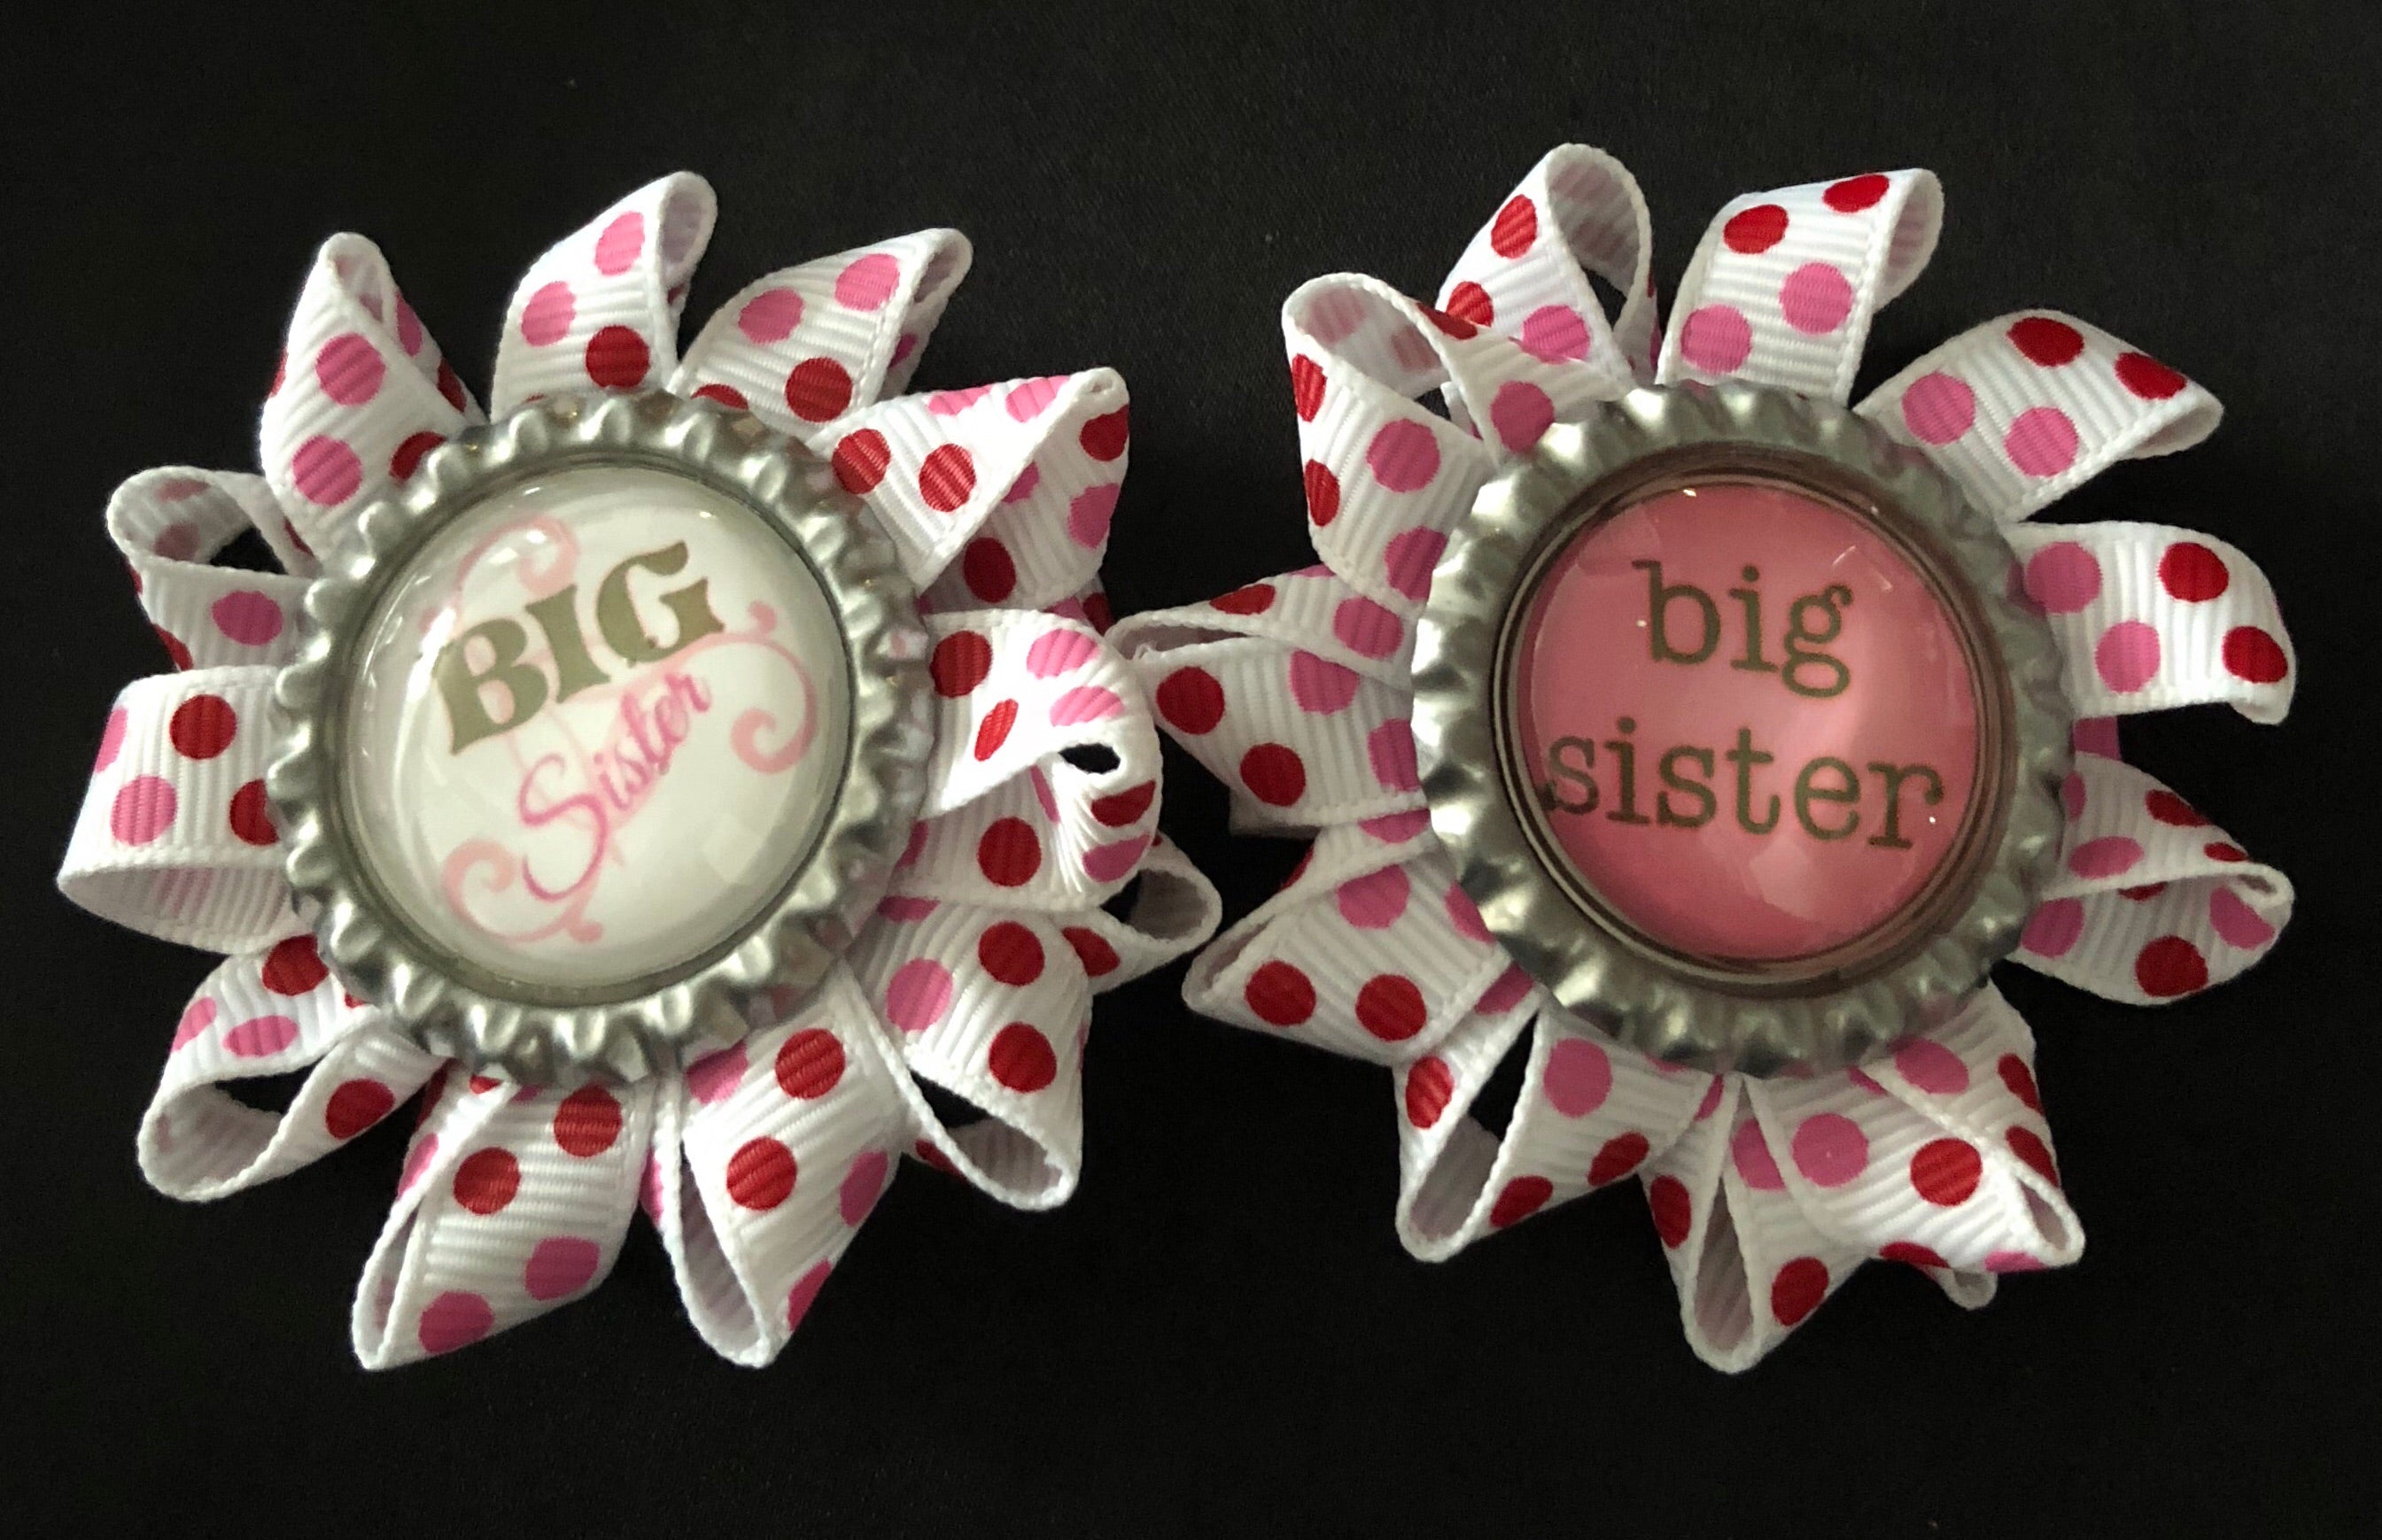 Big Sister / Little Sister Bottle Cap Necklaces